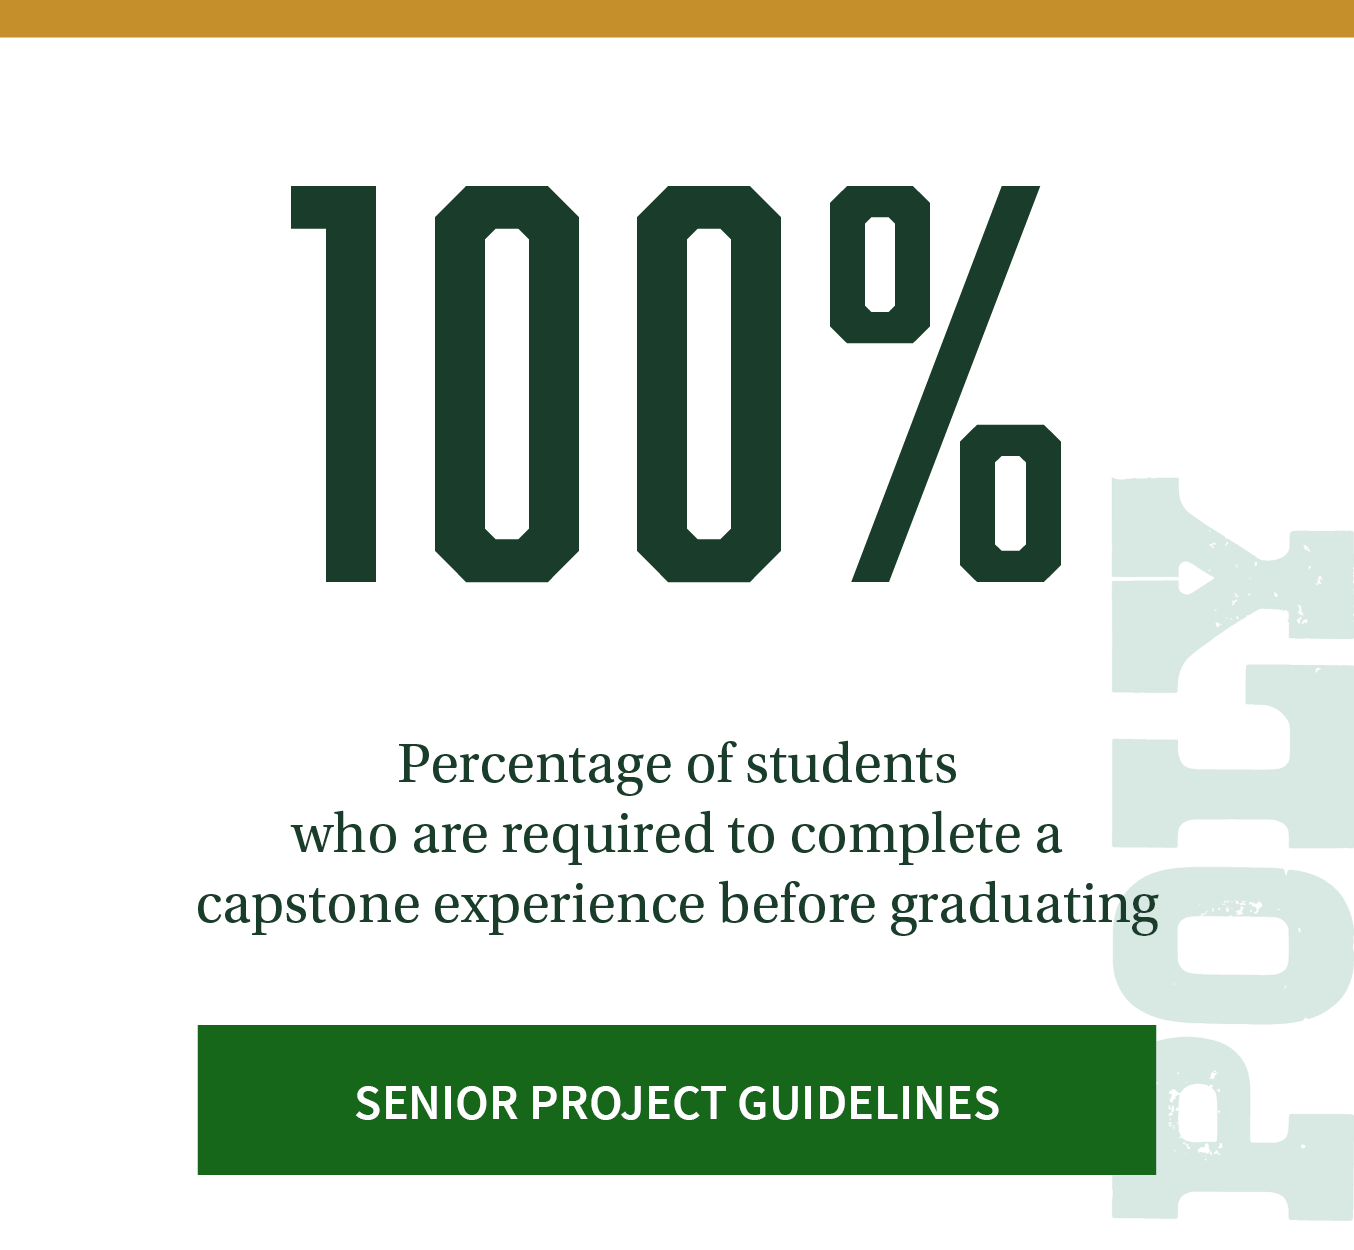 100%. Percentage of students who are required to complete a capstone experience before graduating. Click to review specific senior project guidelines.